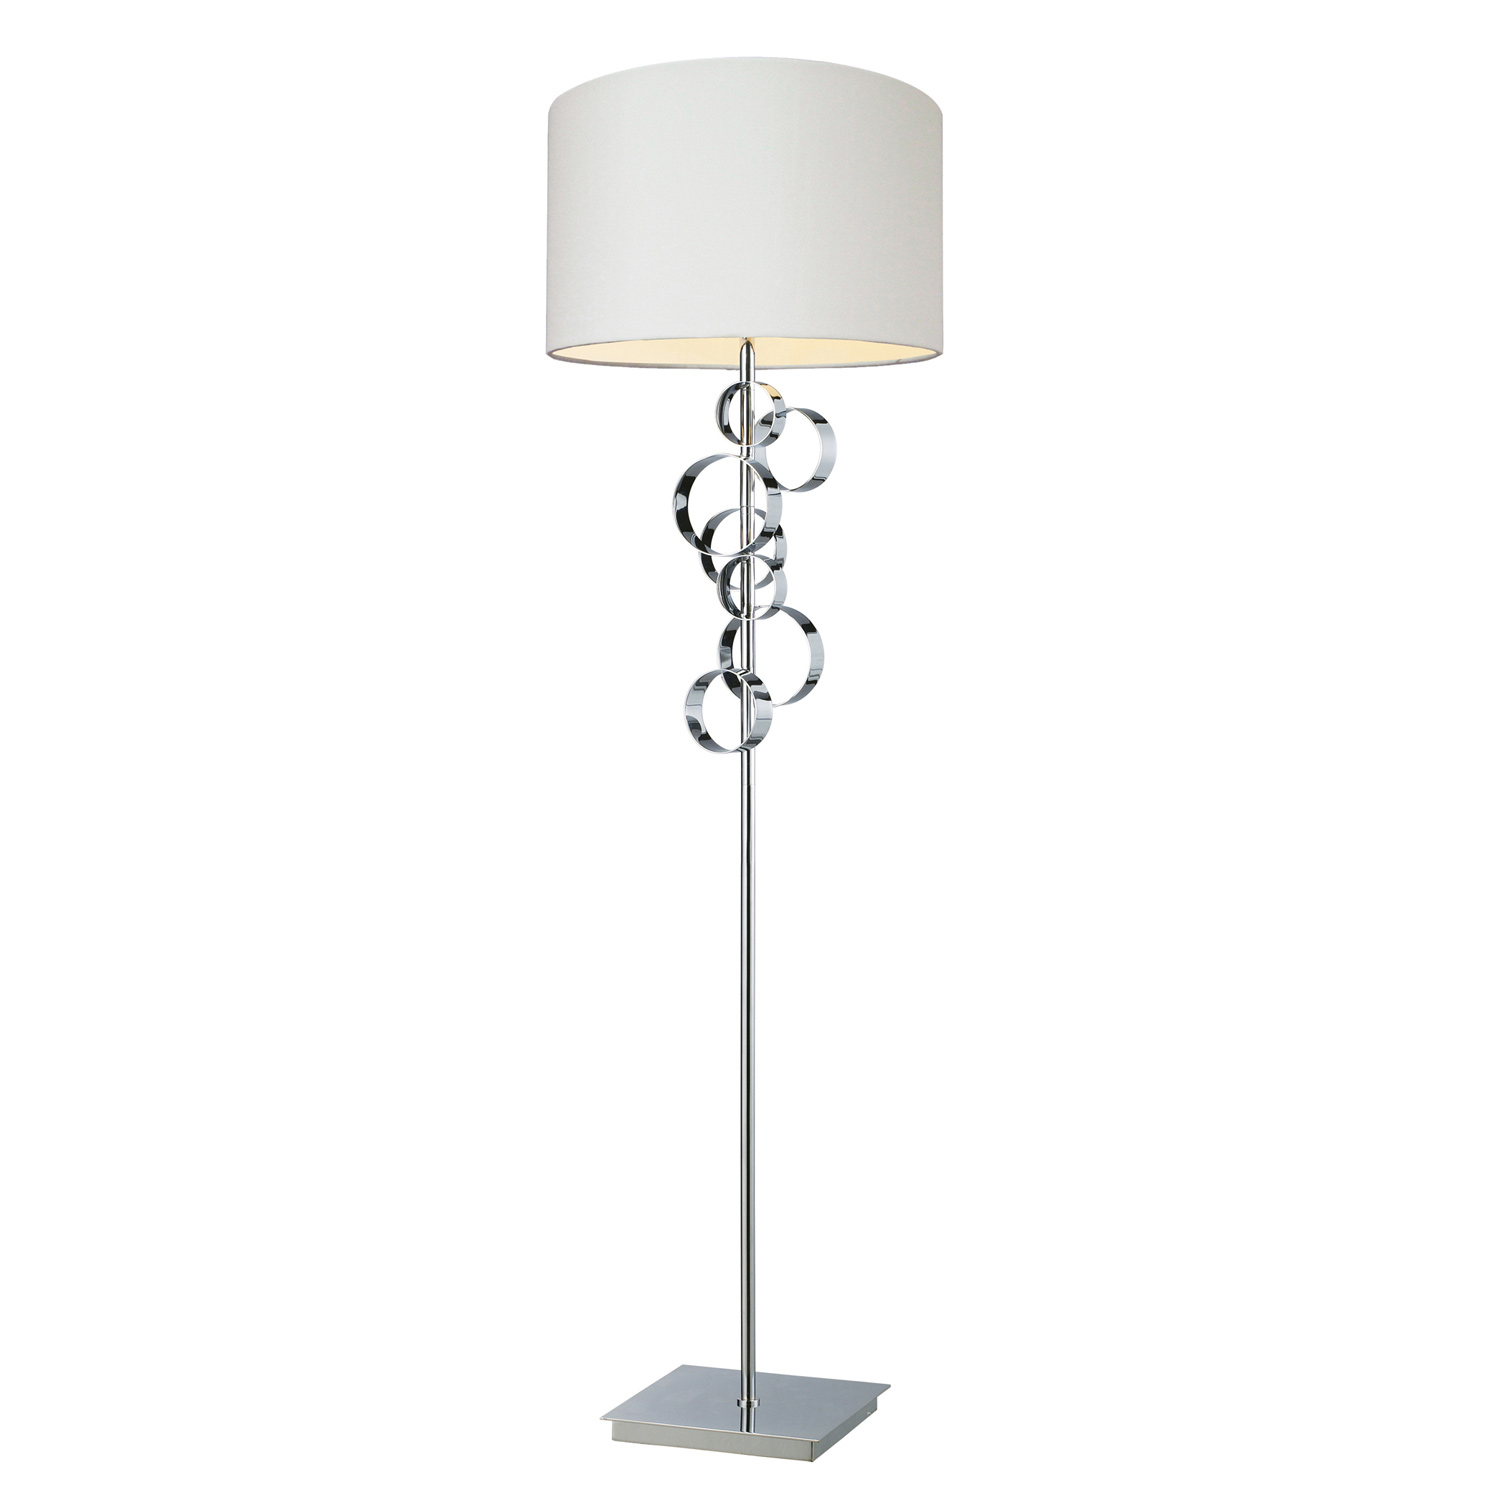 Elk Lighting D1476 Avon Floor Lamp - Chrome